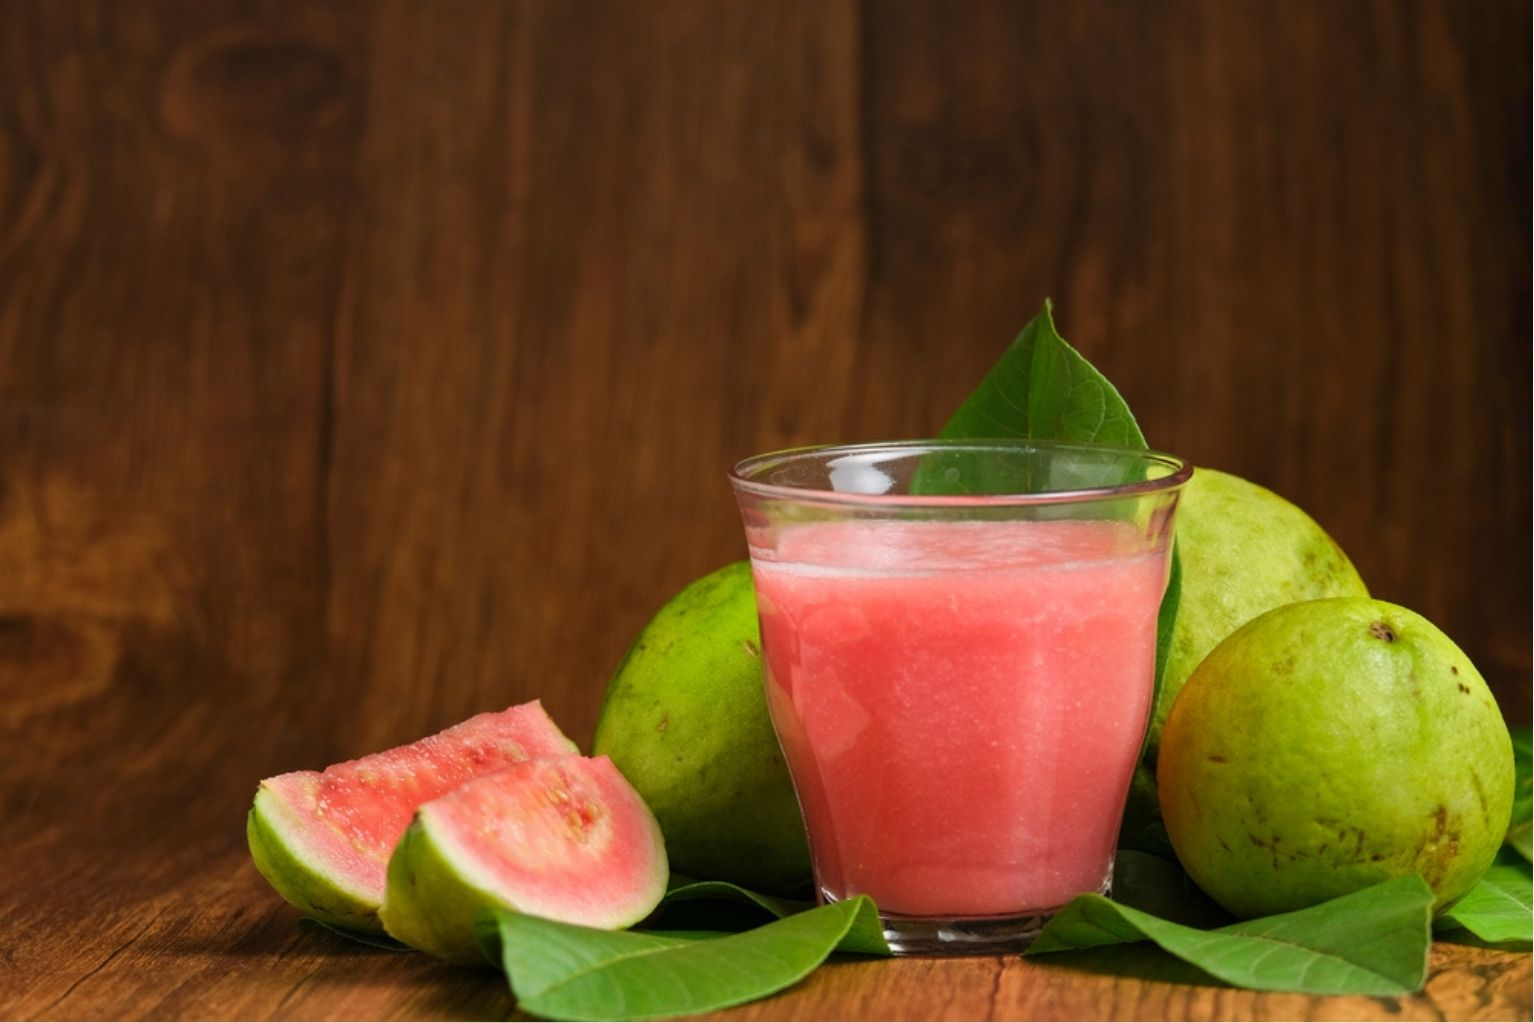 Clear glass filled with pink guava juice next to three guava fruits and two slices of guava on a brown wooden table.